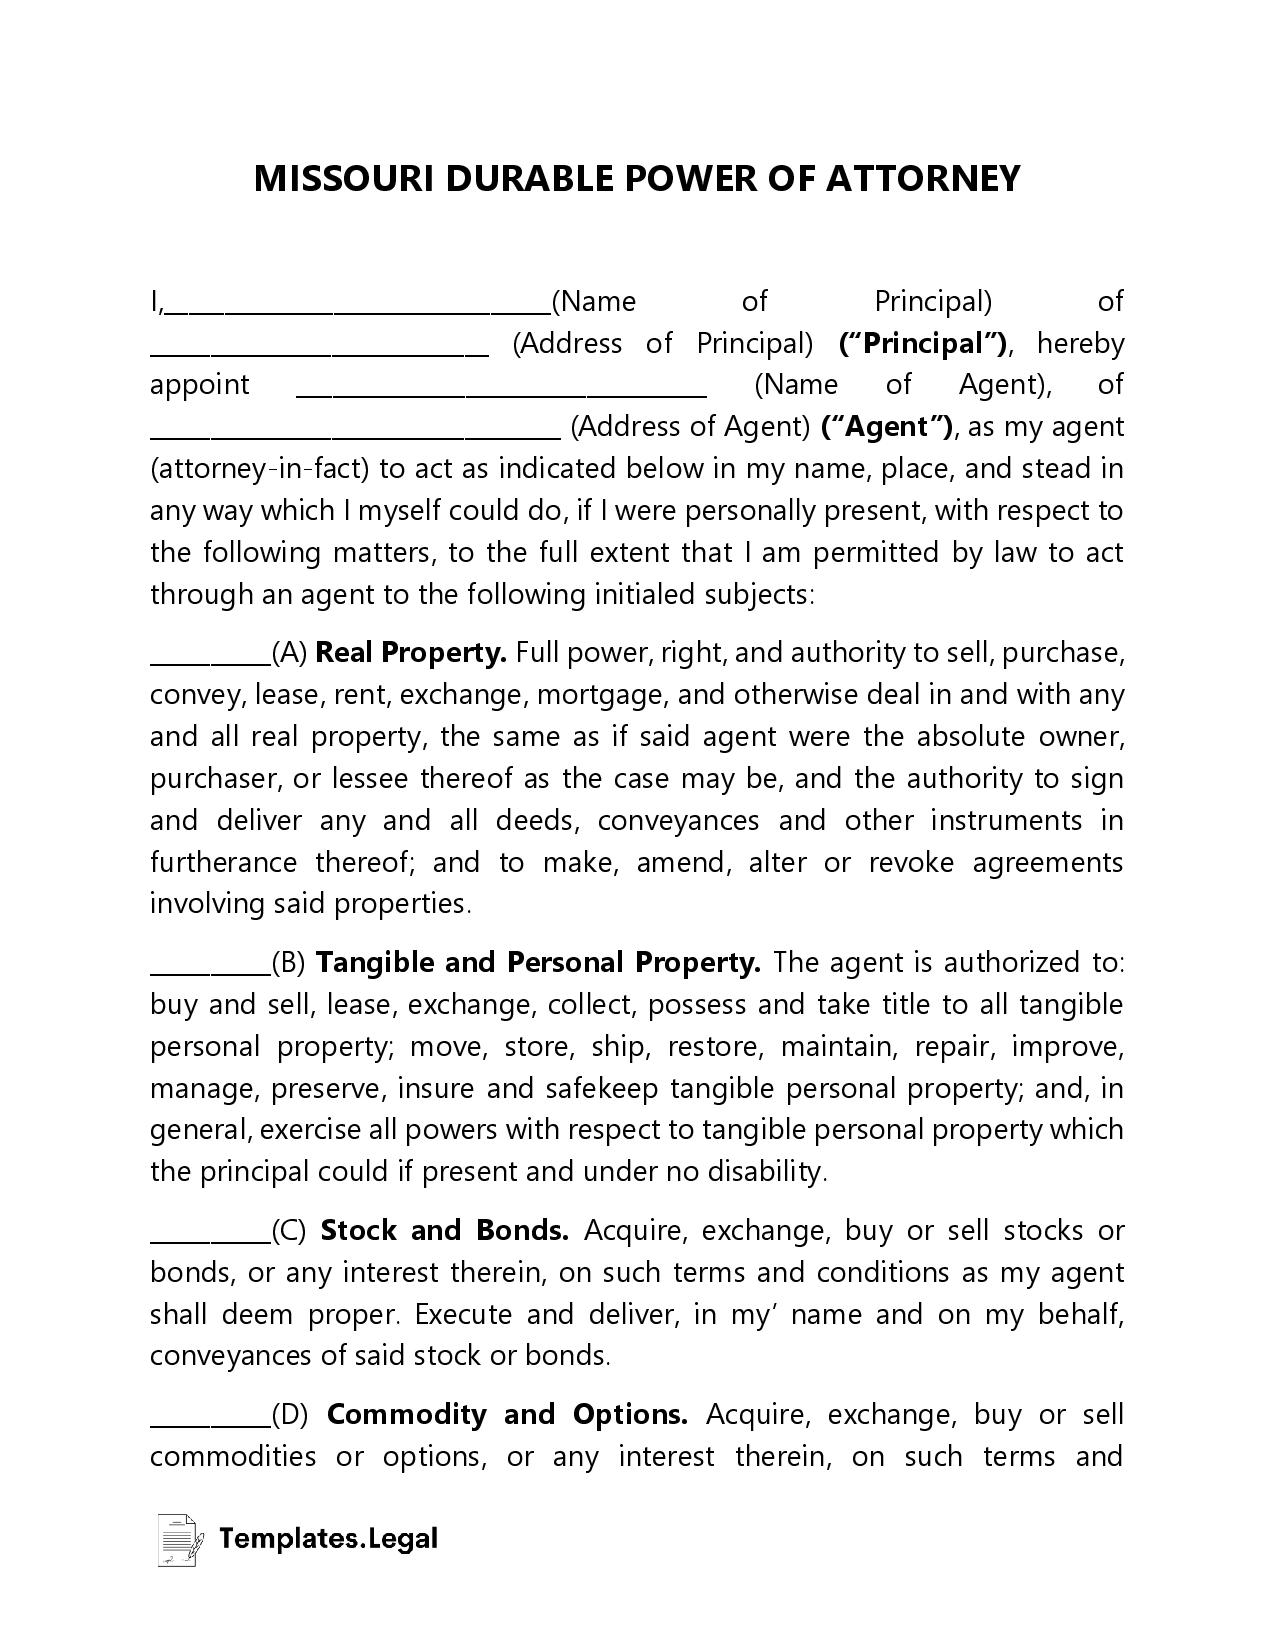 Missouri Durable Power of Attorney - Templates.Legal